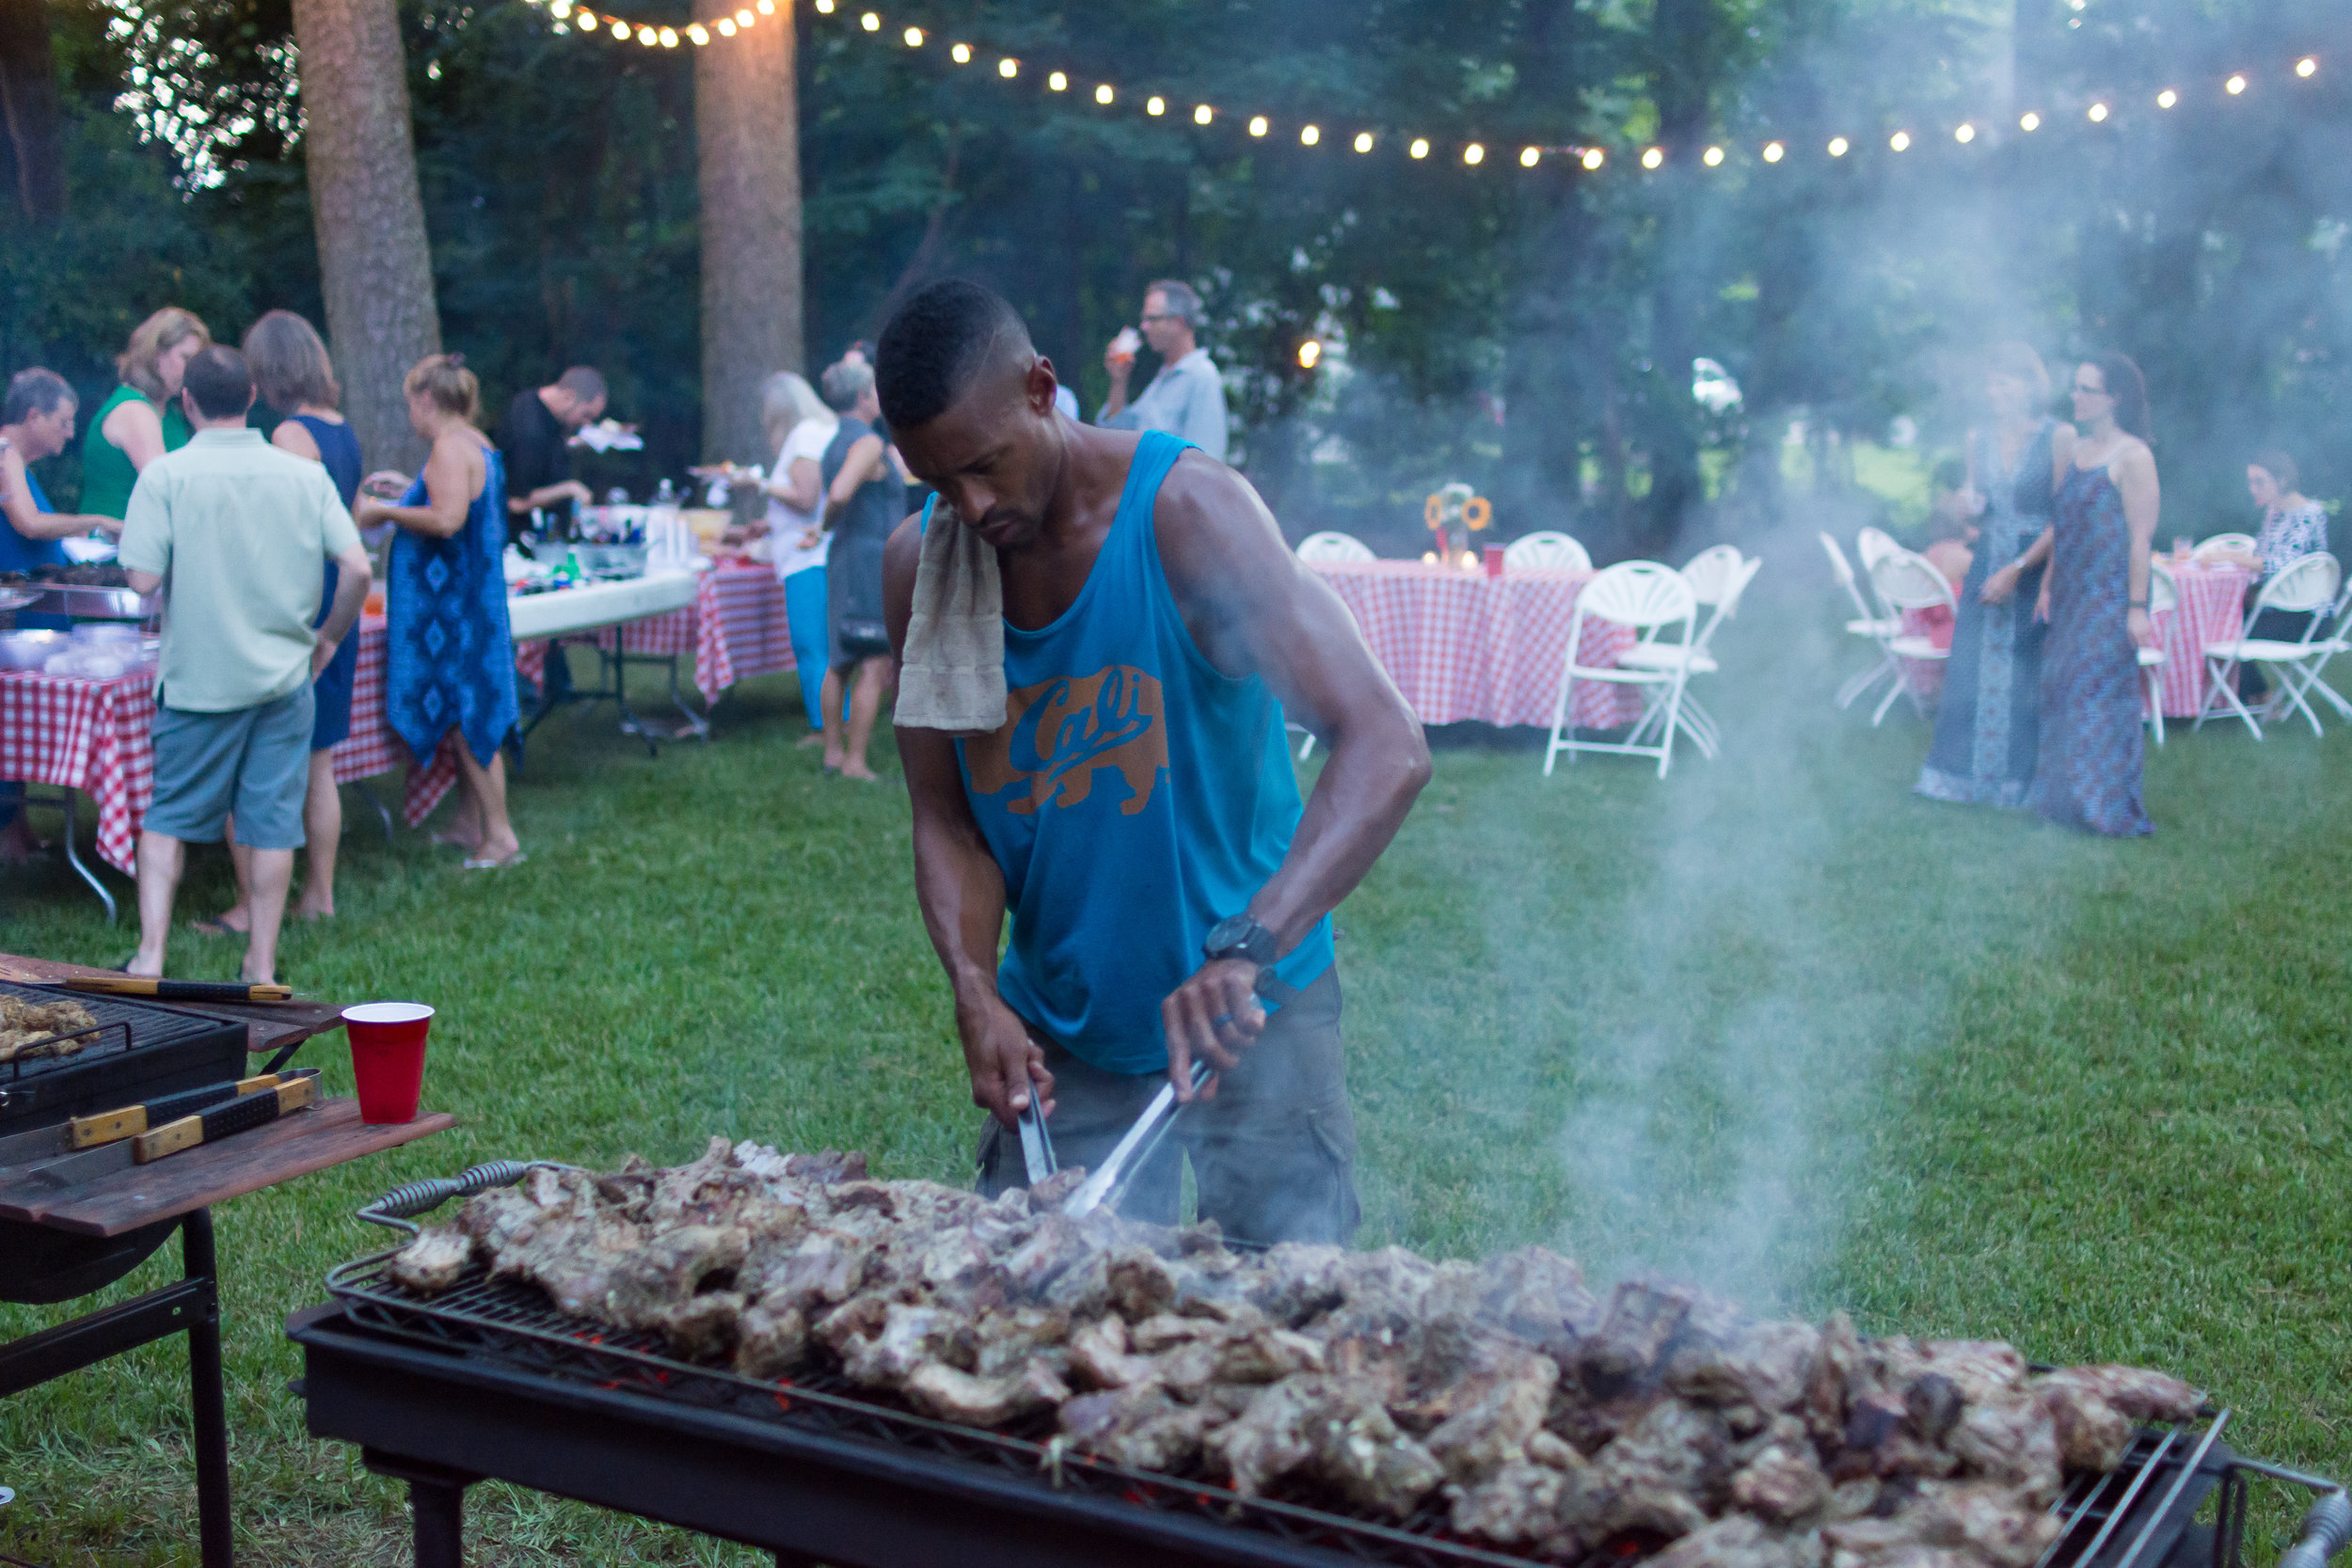 Brandon Wright, better known as Chef B, on the grill that wonderful night with chicken and ribs. The 40 guest didn't know what was in store for them as they bought all the first jars of what came to be known as BnB Gourmet and Grill Saus.